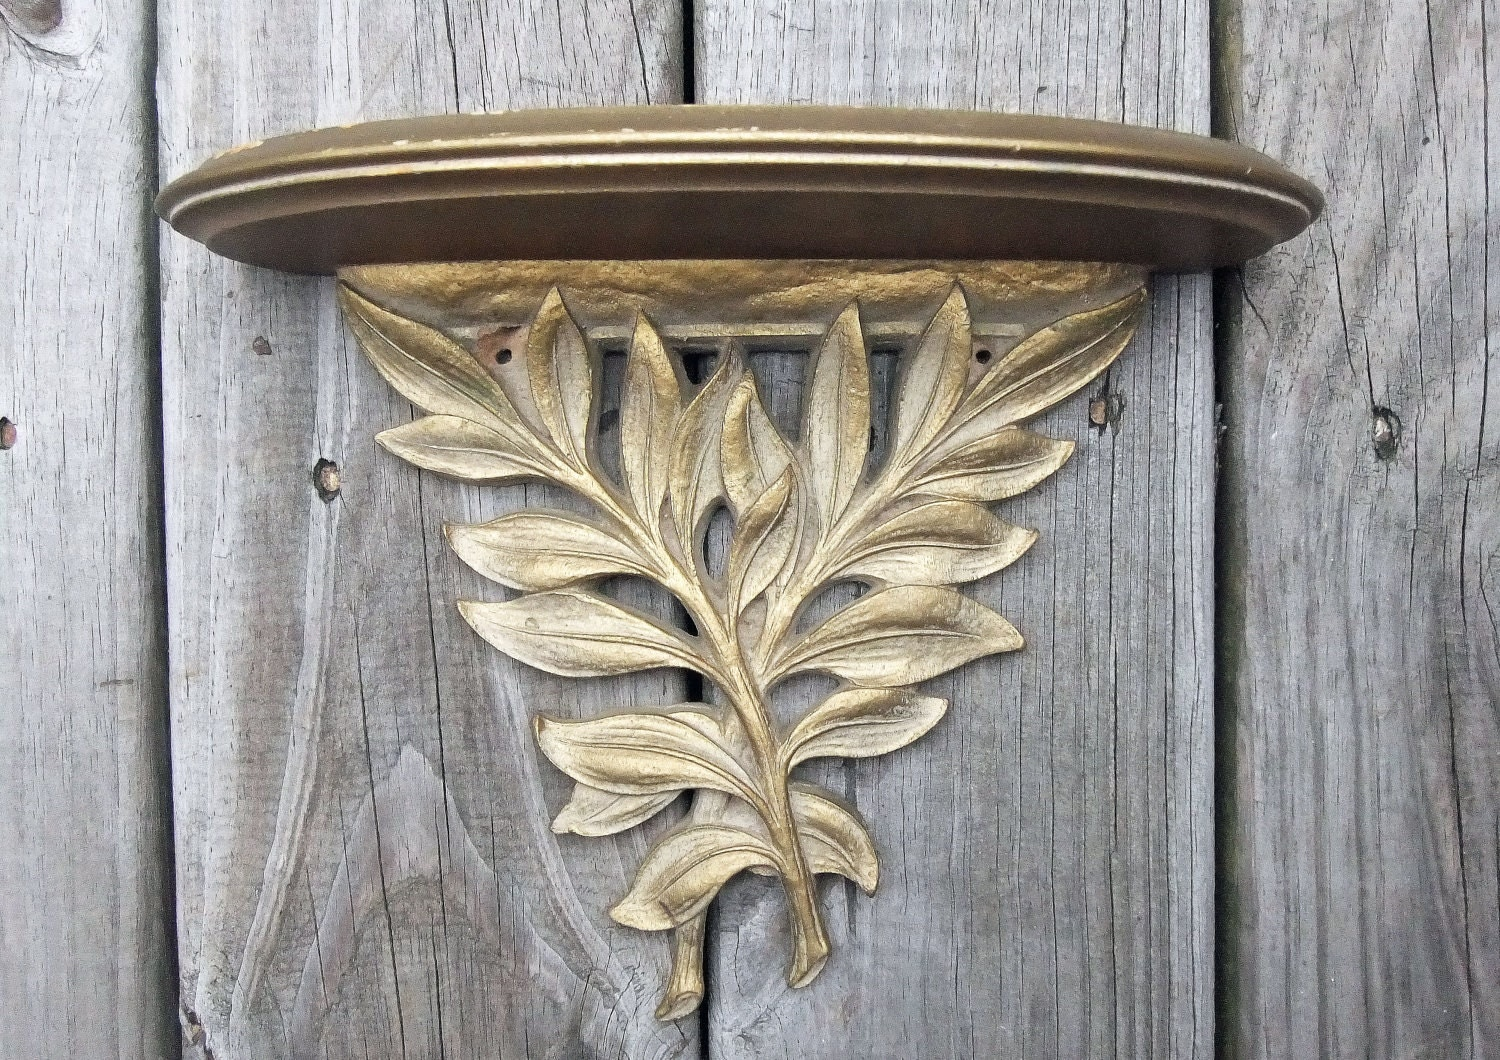 Vintage Golden Leaf Small Shelf Home Decor Wall Hanging Vintage Home Friendly - VintageHomeFriend